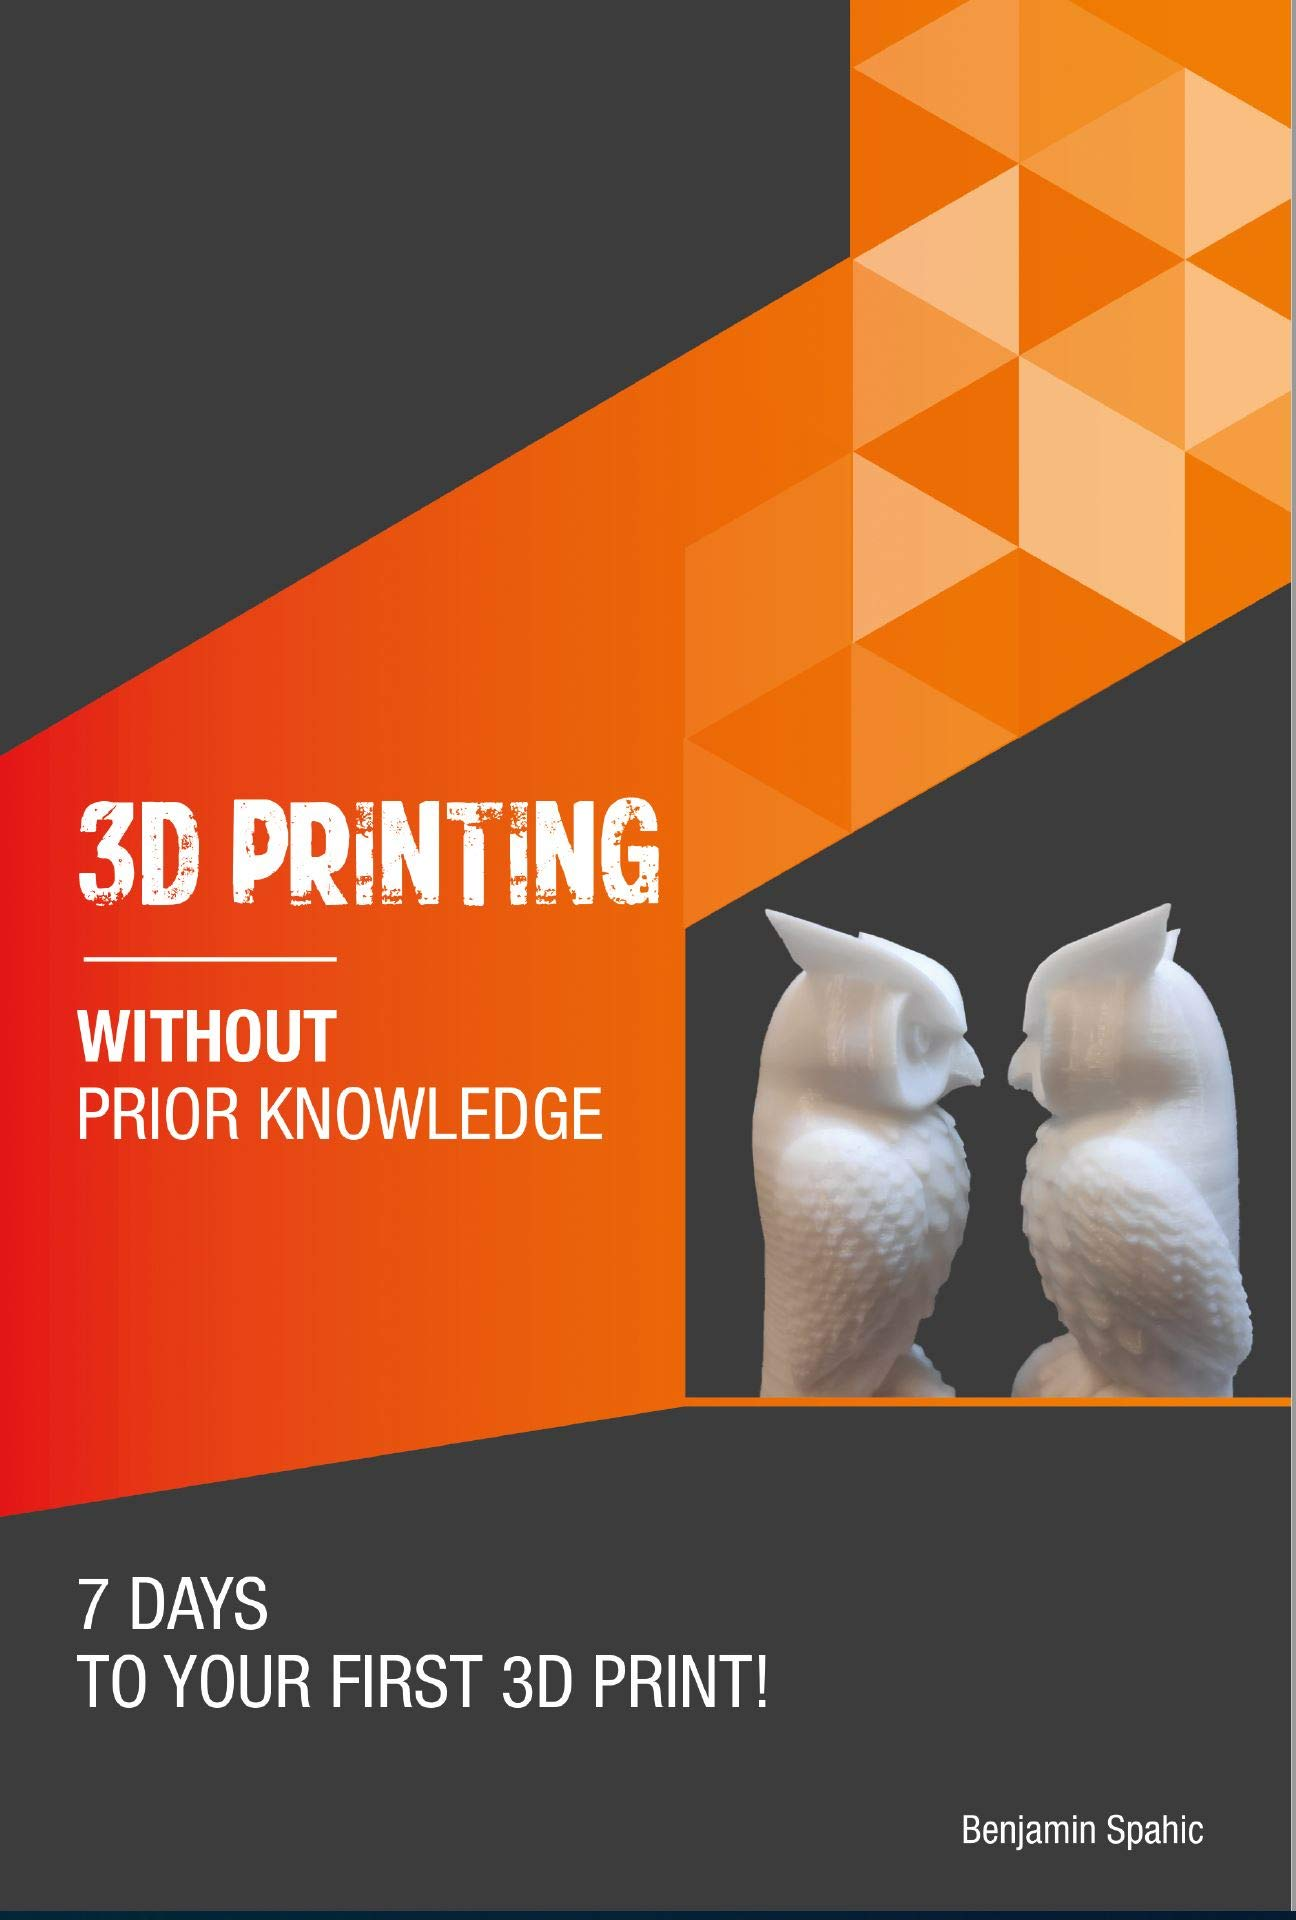 Download 3D Printing Without Prior Knowledge : 7 Days To Your First 3D Print 